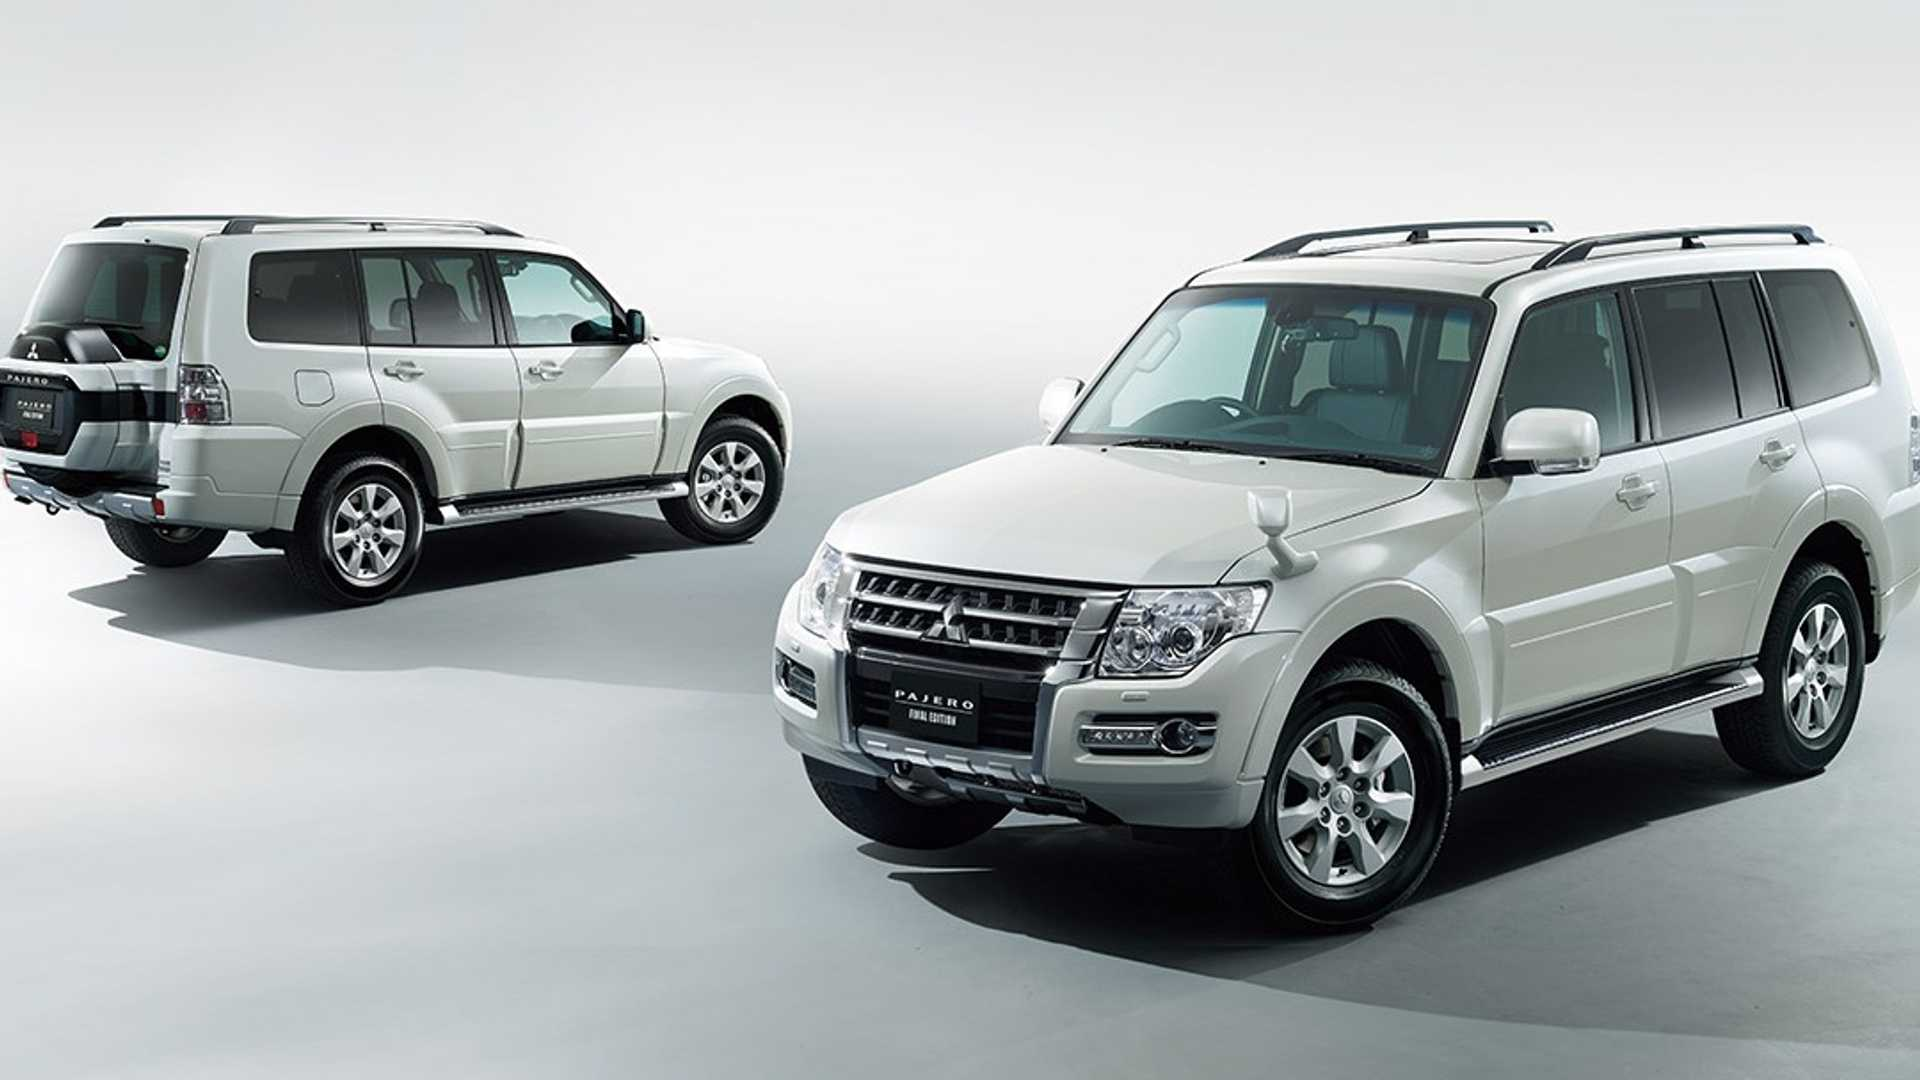 39 All New 2020 All Mitsubishi Pajero Price And Review